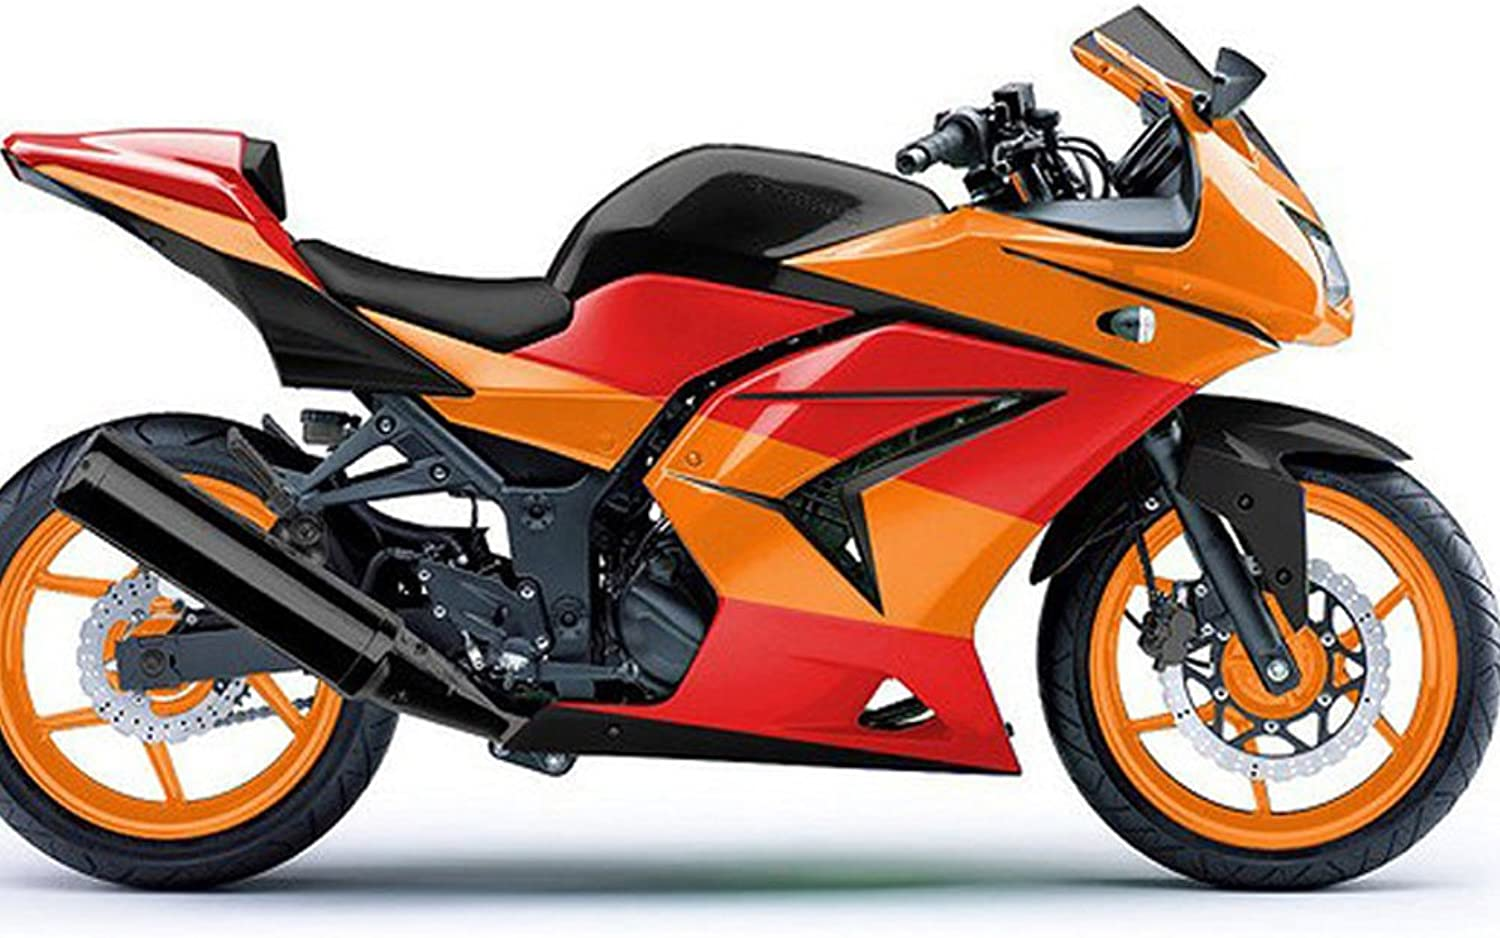 Advanblack ABS Injection Fairing Plastic Kits for 2008 2009 2010 2011 2012 Kawasaki Ninja 250R EX250